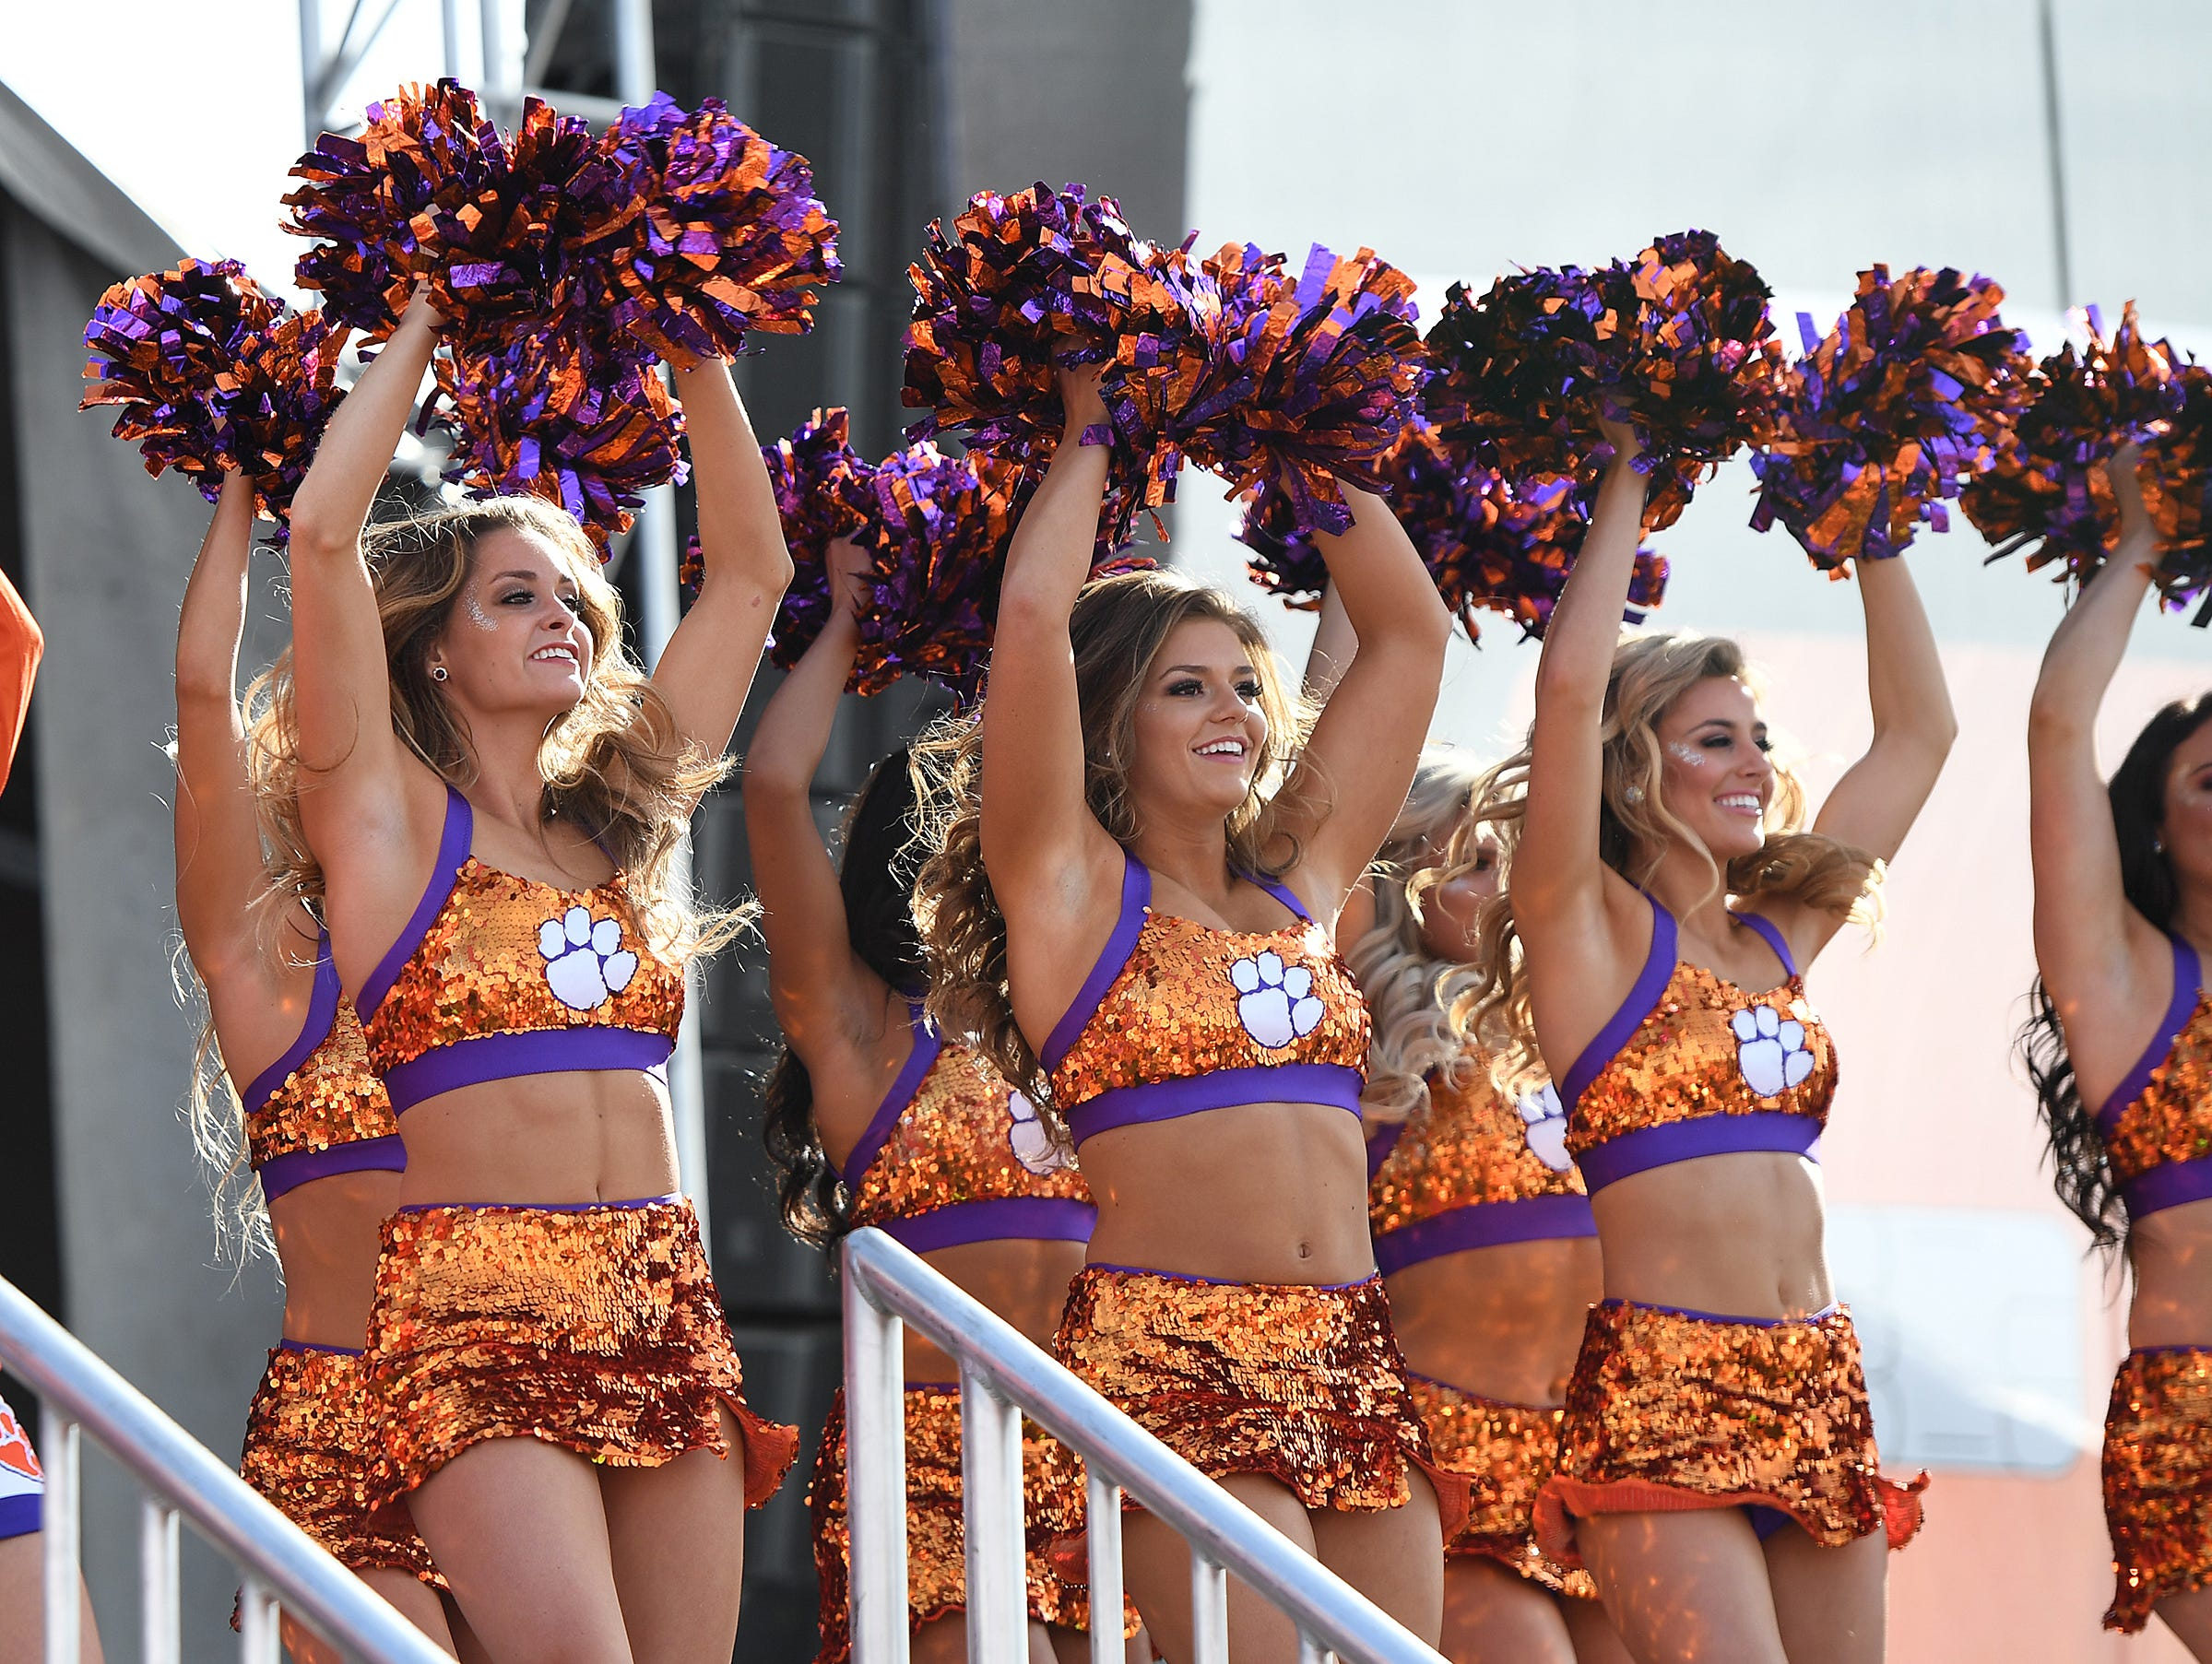 Clemson's Rally Cats during the College Football Championship Playoff Tailgate outside Levi's Stadium in Santa Clara, CA Monday, January 7, 2019.